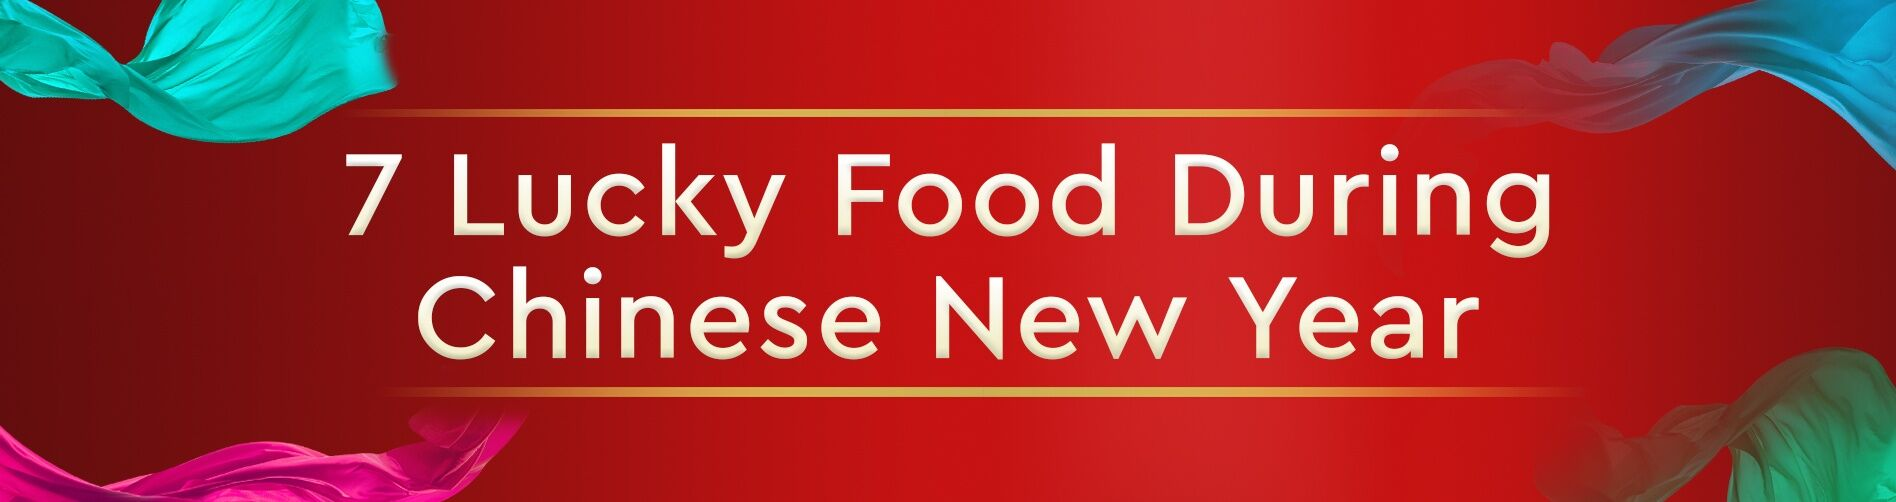 LCT - LUCKY FOOD WEB BANNER